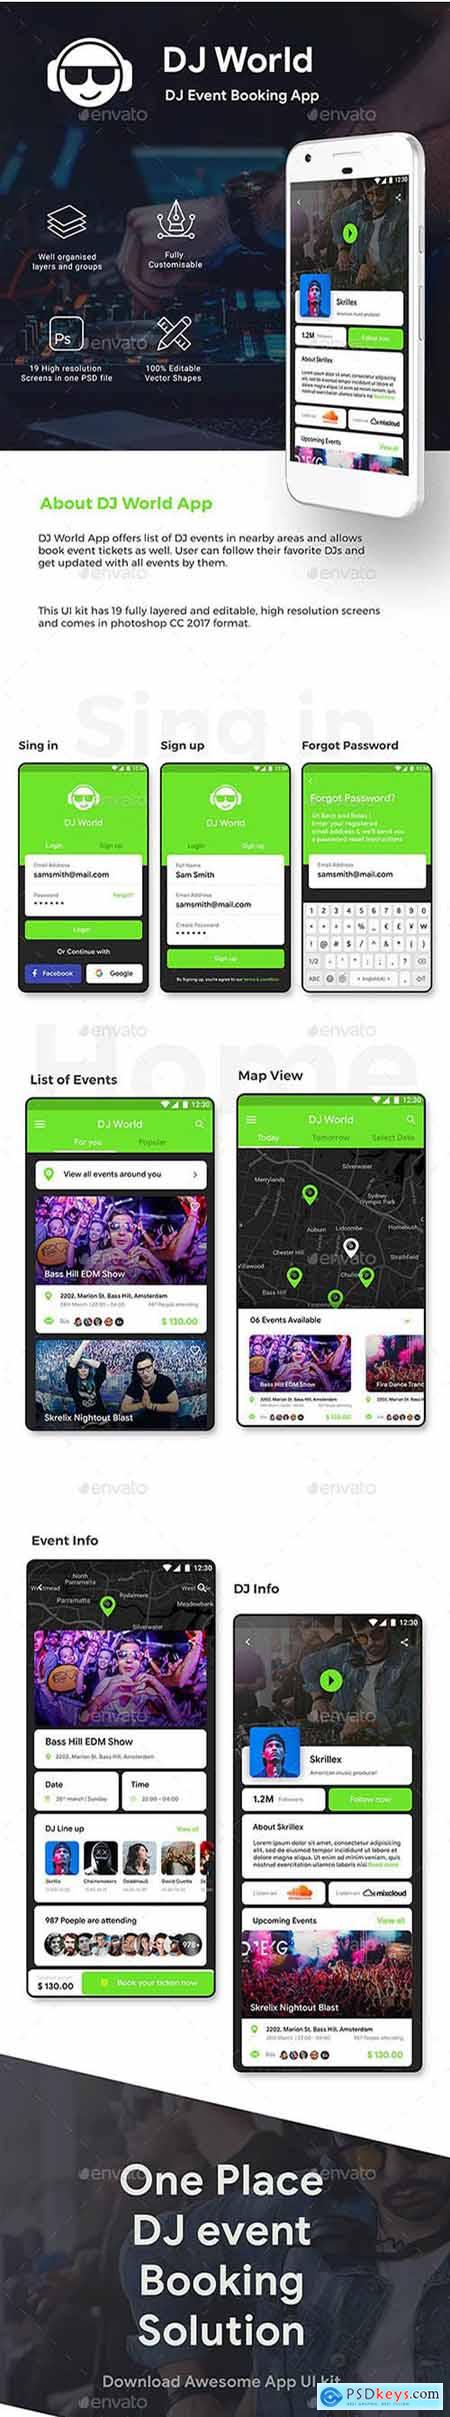 Graphicriver DJ Event Booking App UI Kit DJ World